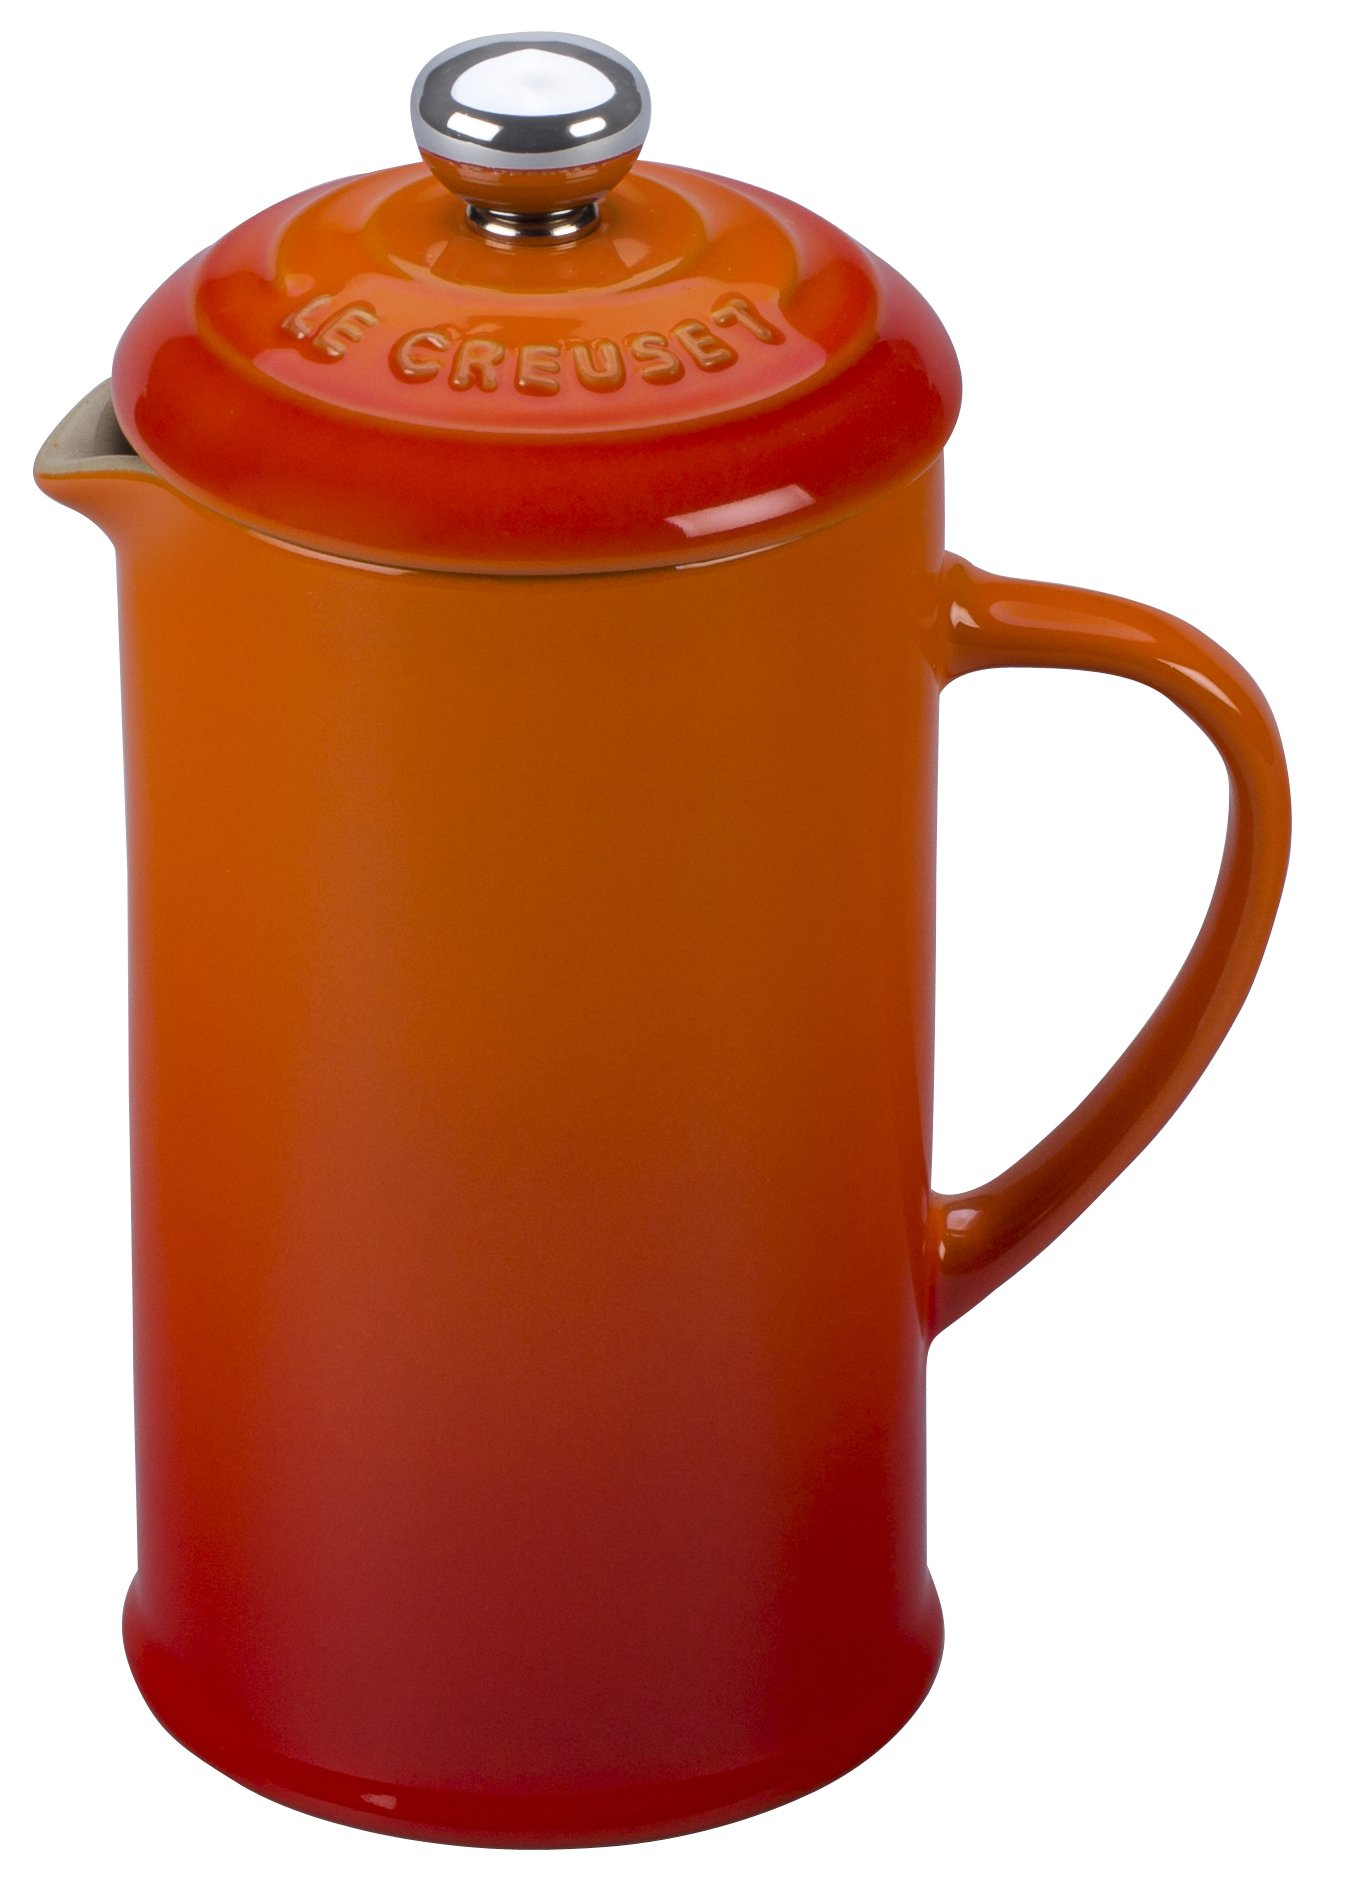 Le Creuset of America Stoneware Petite French Press, 12 oz, Flame